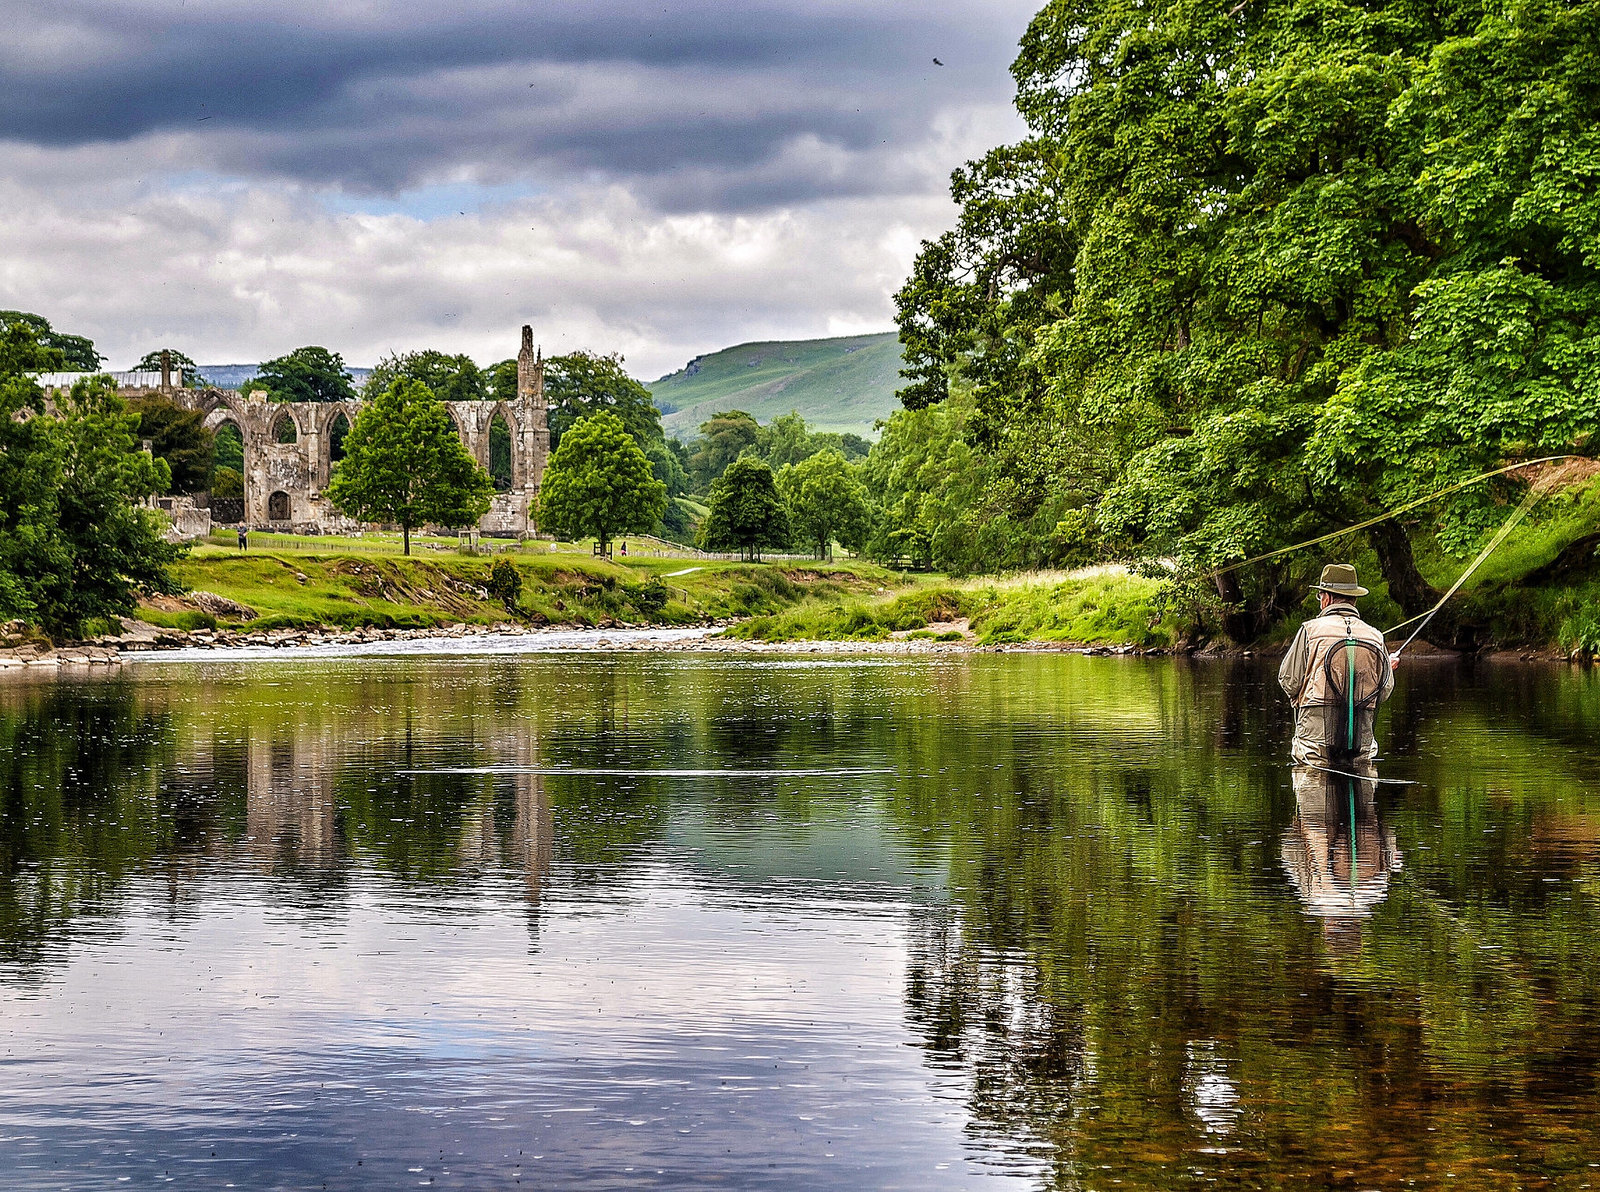 Fly Fishing in the River Wharfe next to Bolton Abbey, Wharfedale. Credit Carl Milner